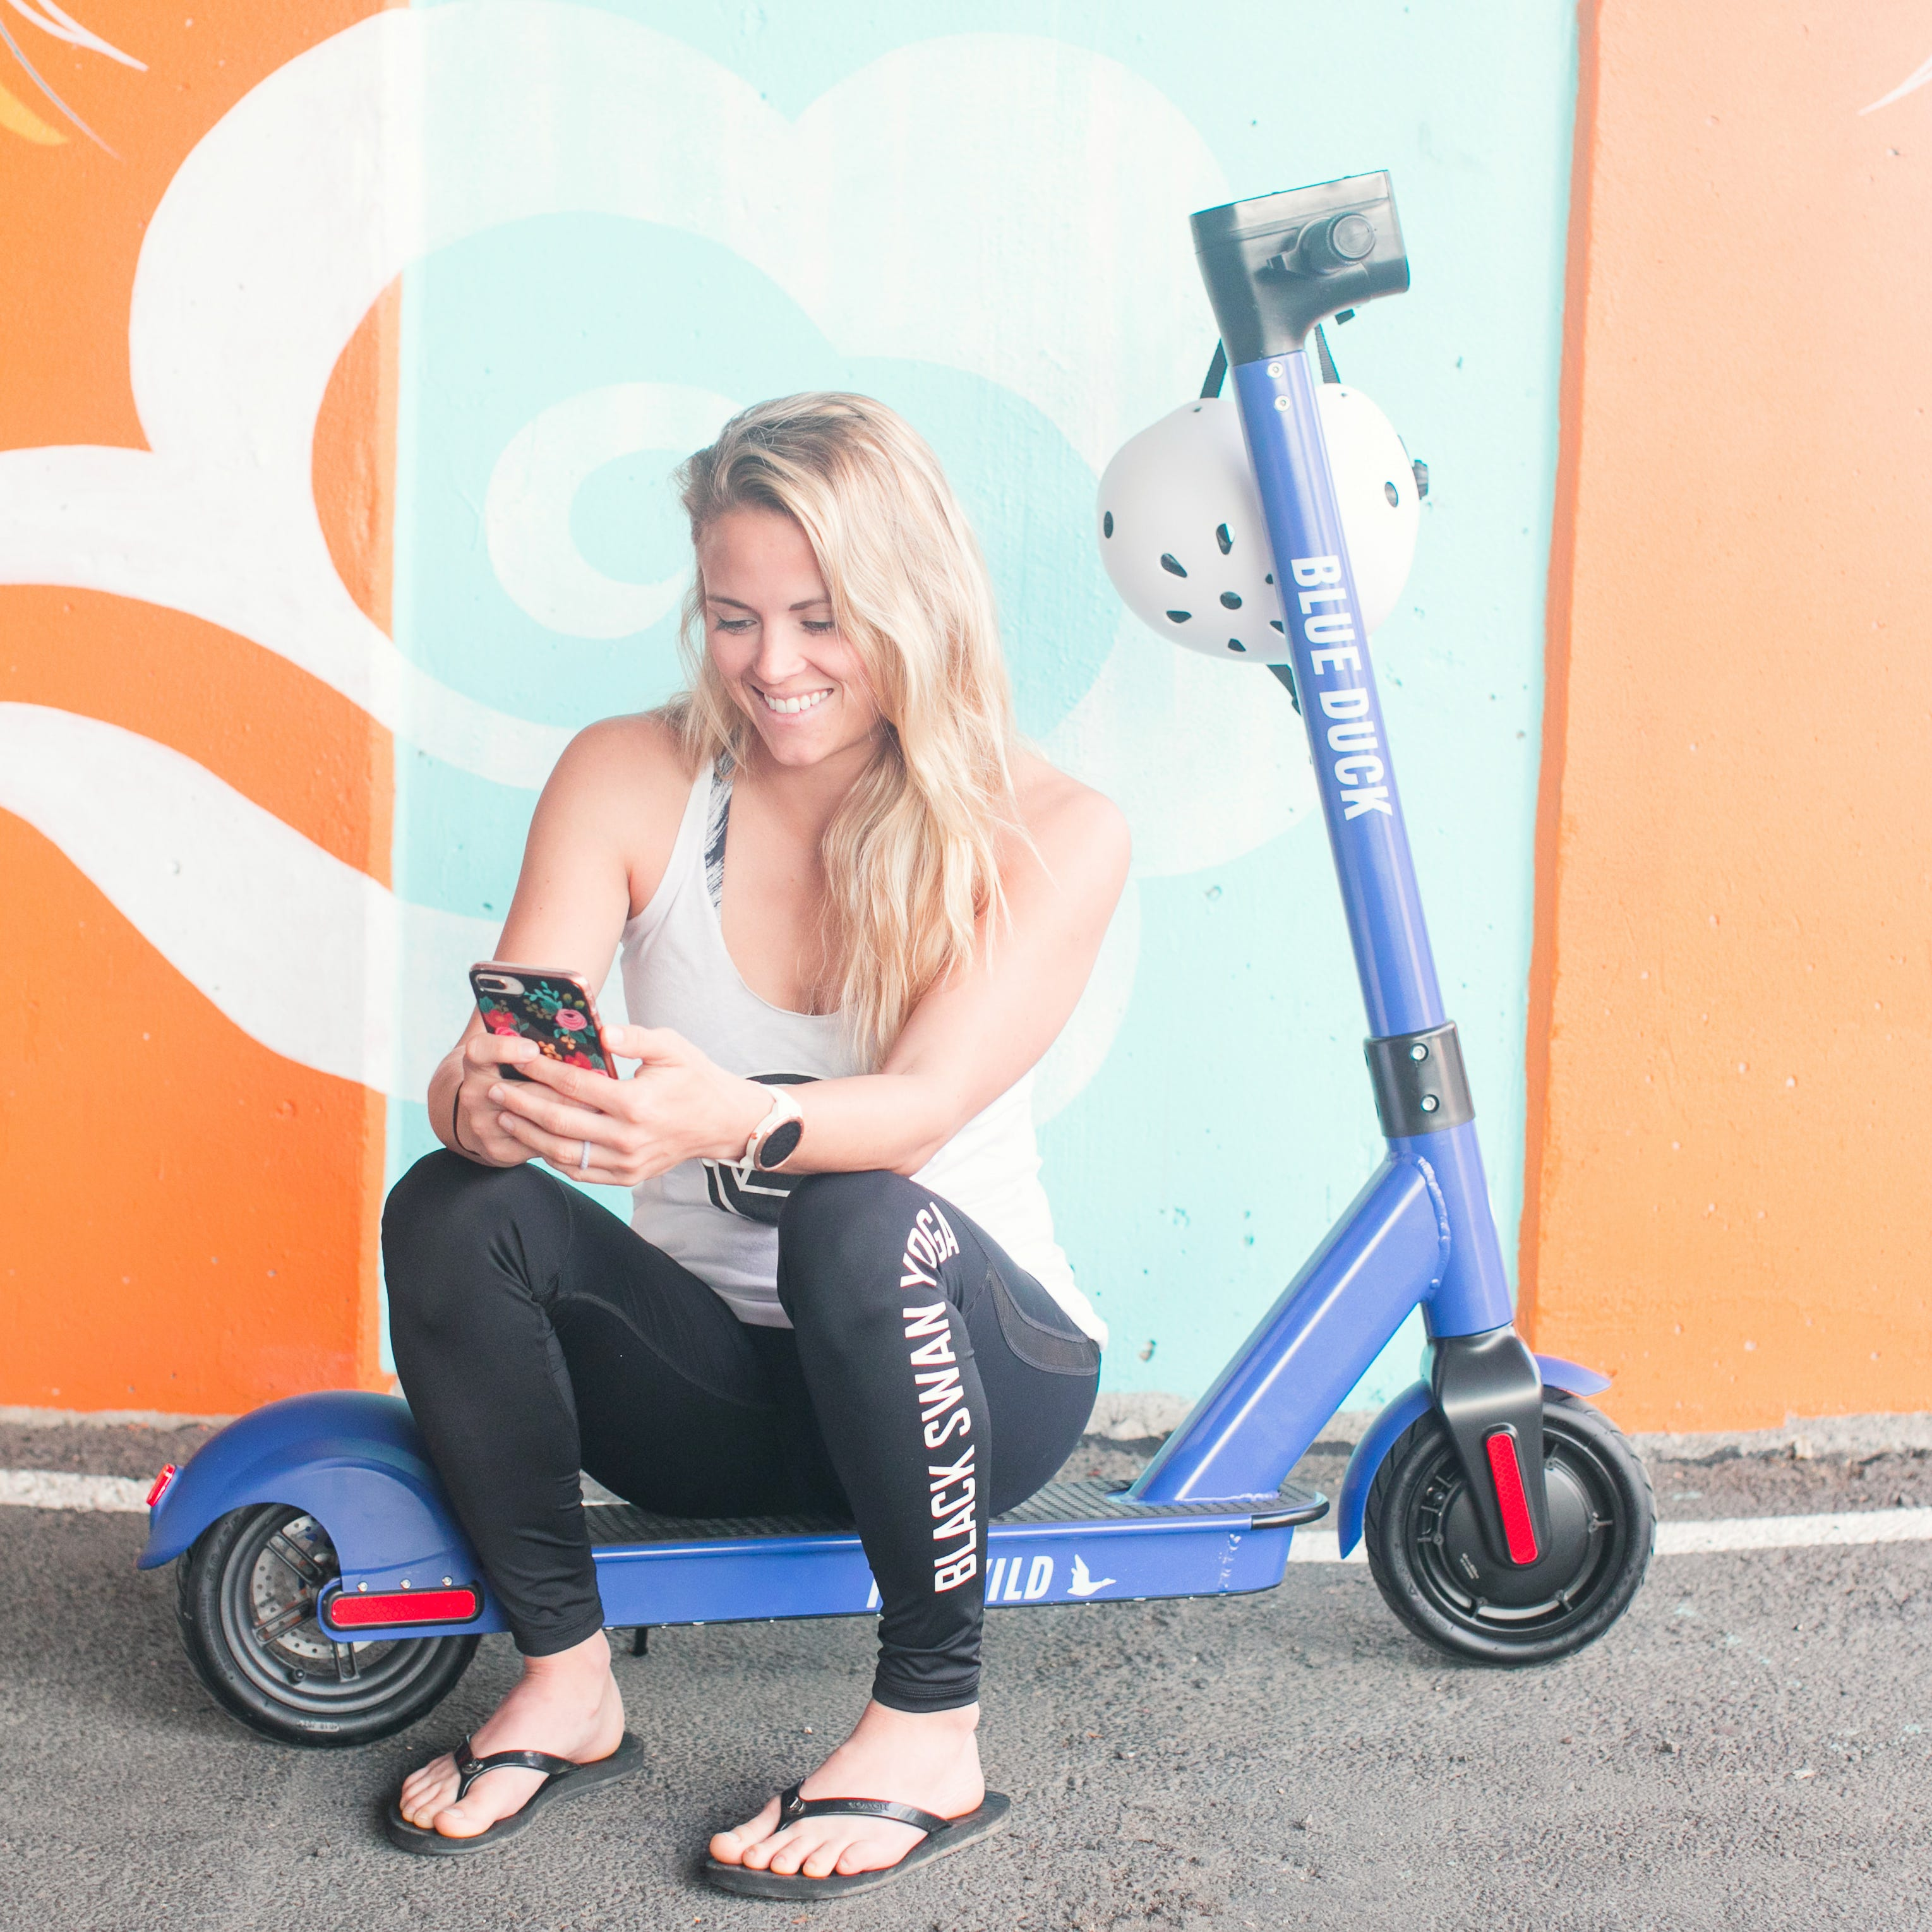 Blue Duck Scooters transit system arrives in Pensacola for trial run